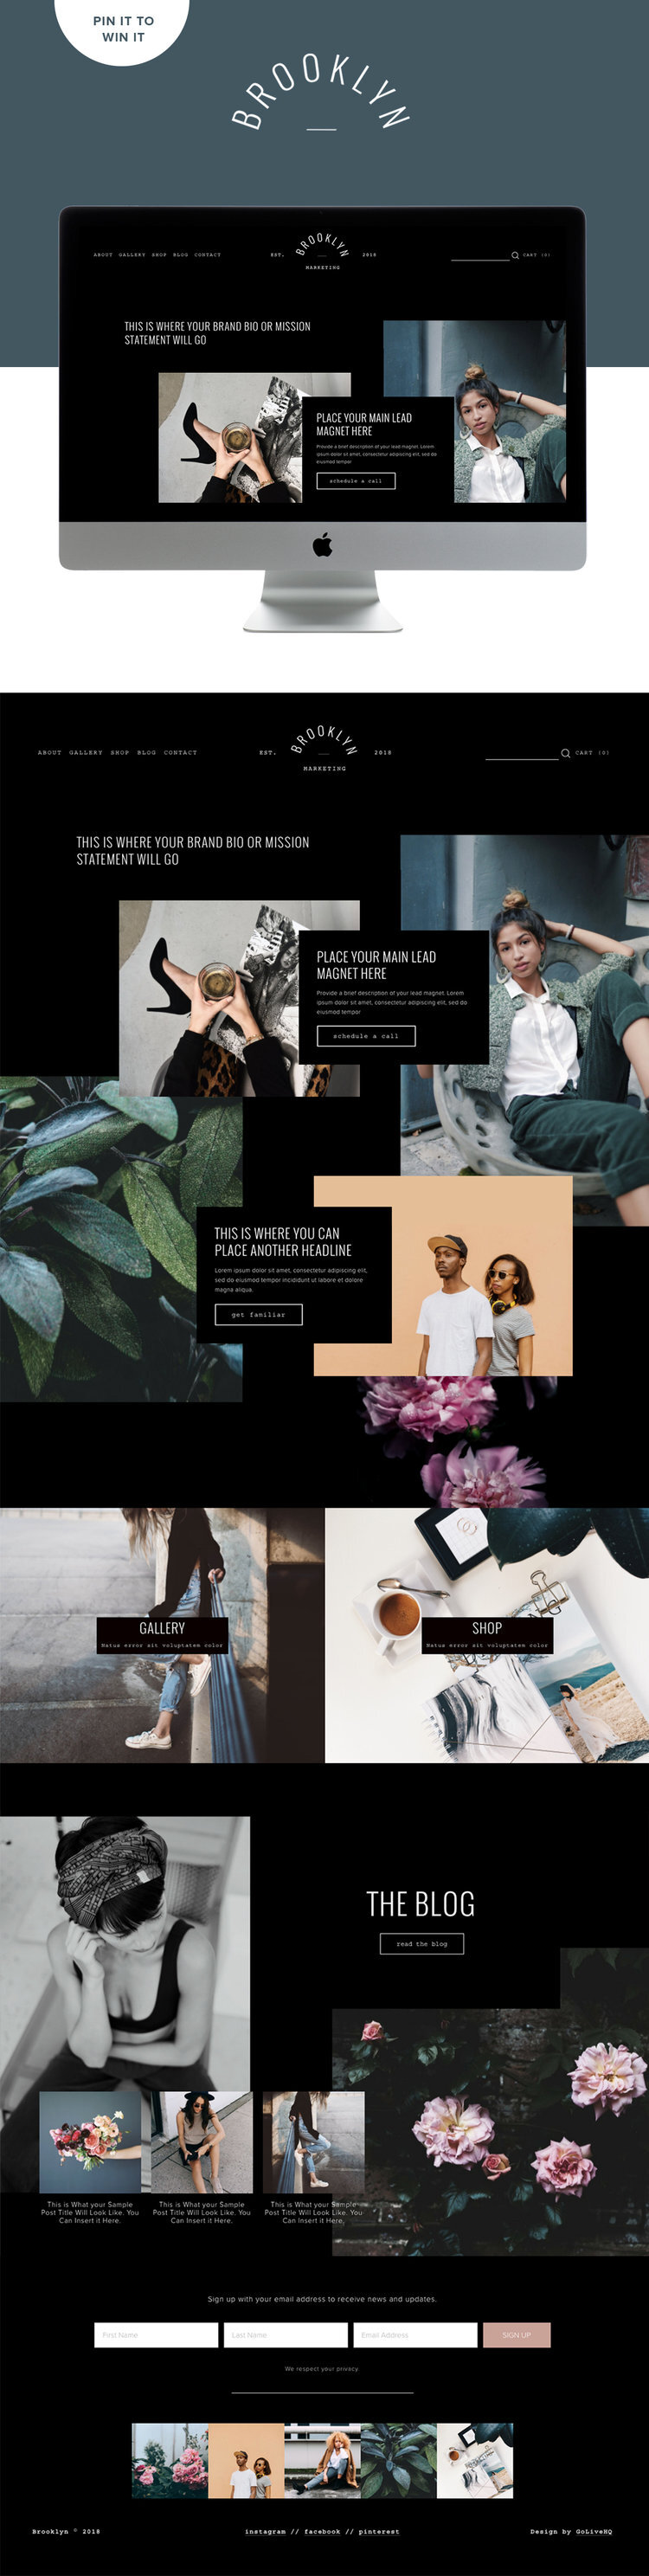 Edgy+modern+dark+website+template+for+Squarespace+by+Go+Live+HQ.jpg